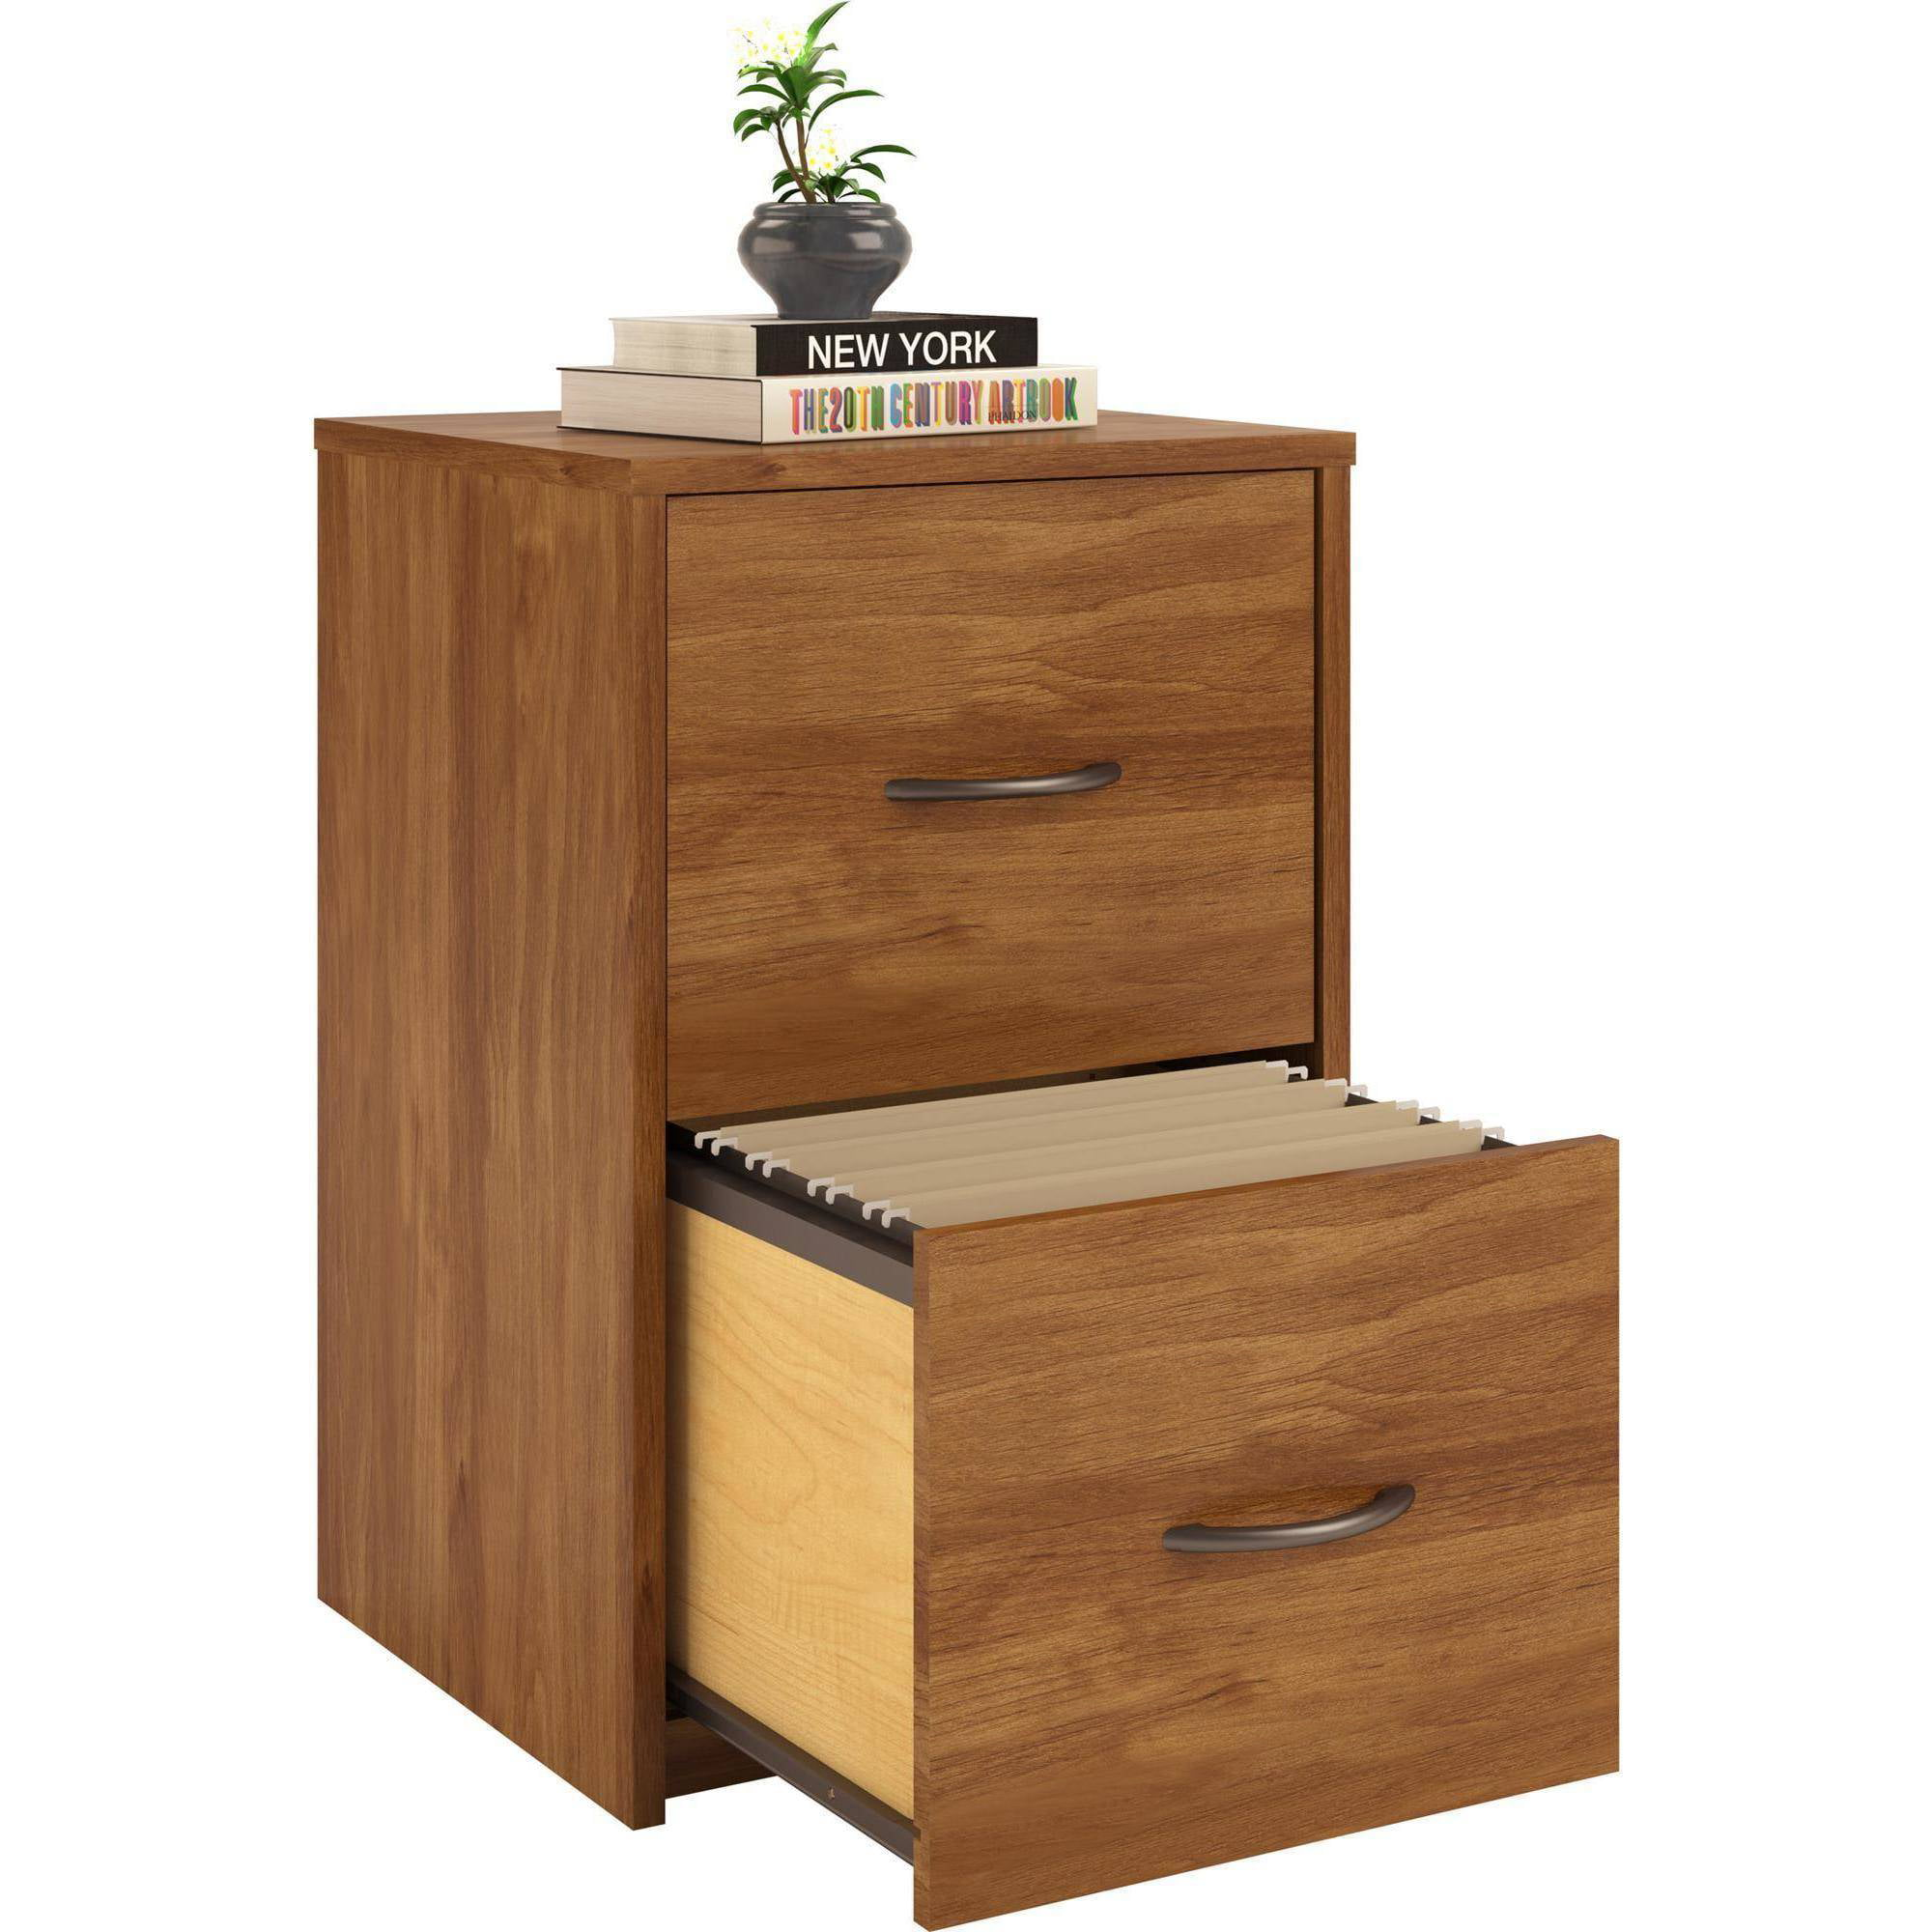 sale file wooden with filing for tall of white storage black wood cabinets vertical furniture size home drawer full two lock lateral cabinet cherry office legal